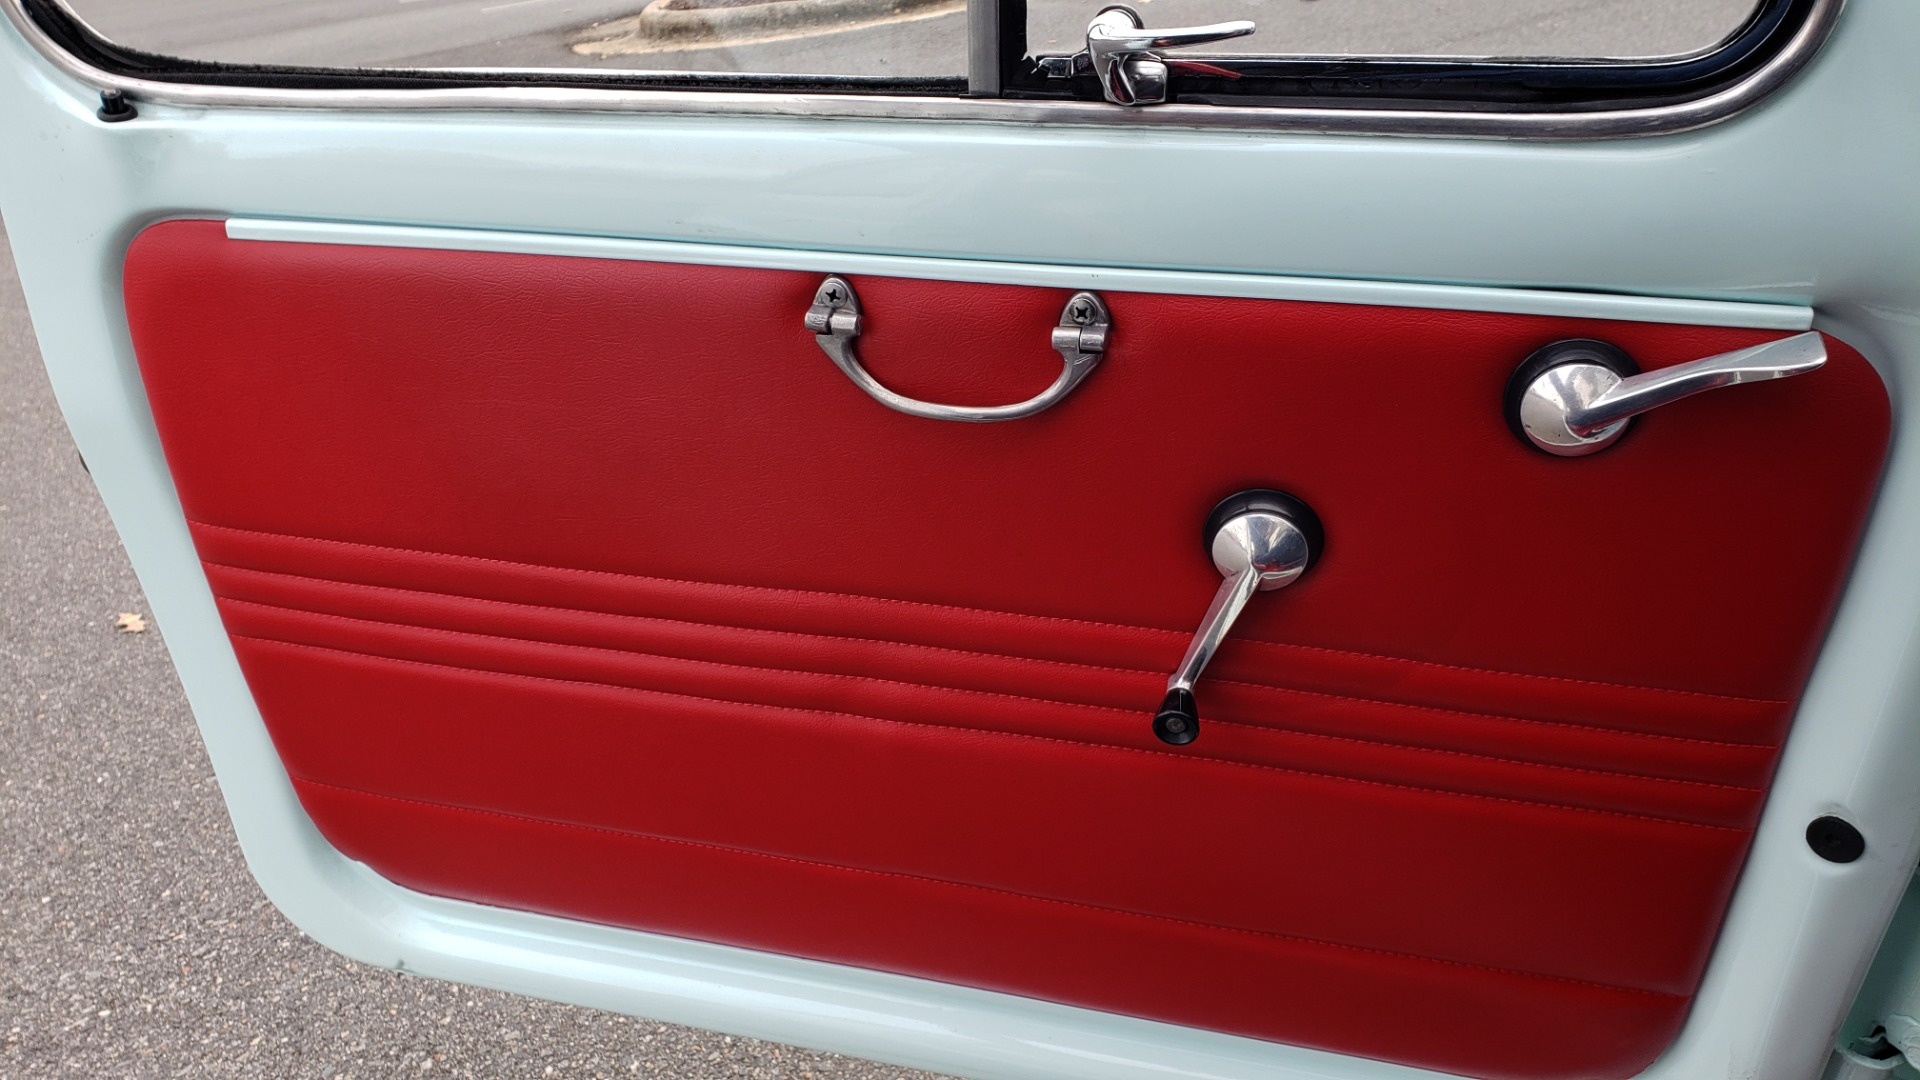 Used 1968 FIAT 500 NUOVA / SOFT-TOP / LUGGAGE RACK / RESTORED, LIKE NEW for sale $21,900 at Formula Imports in Charlotte NC 28227 23